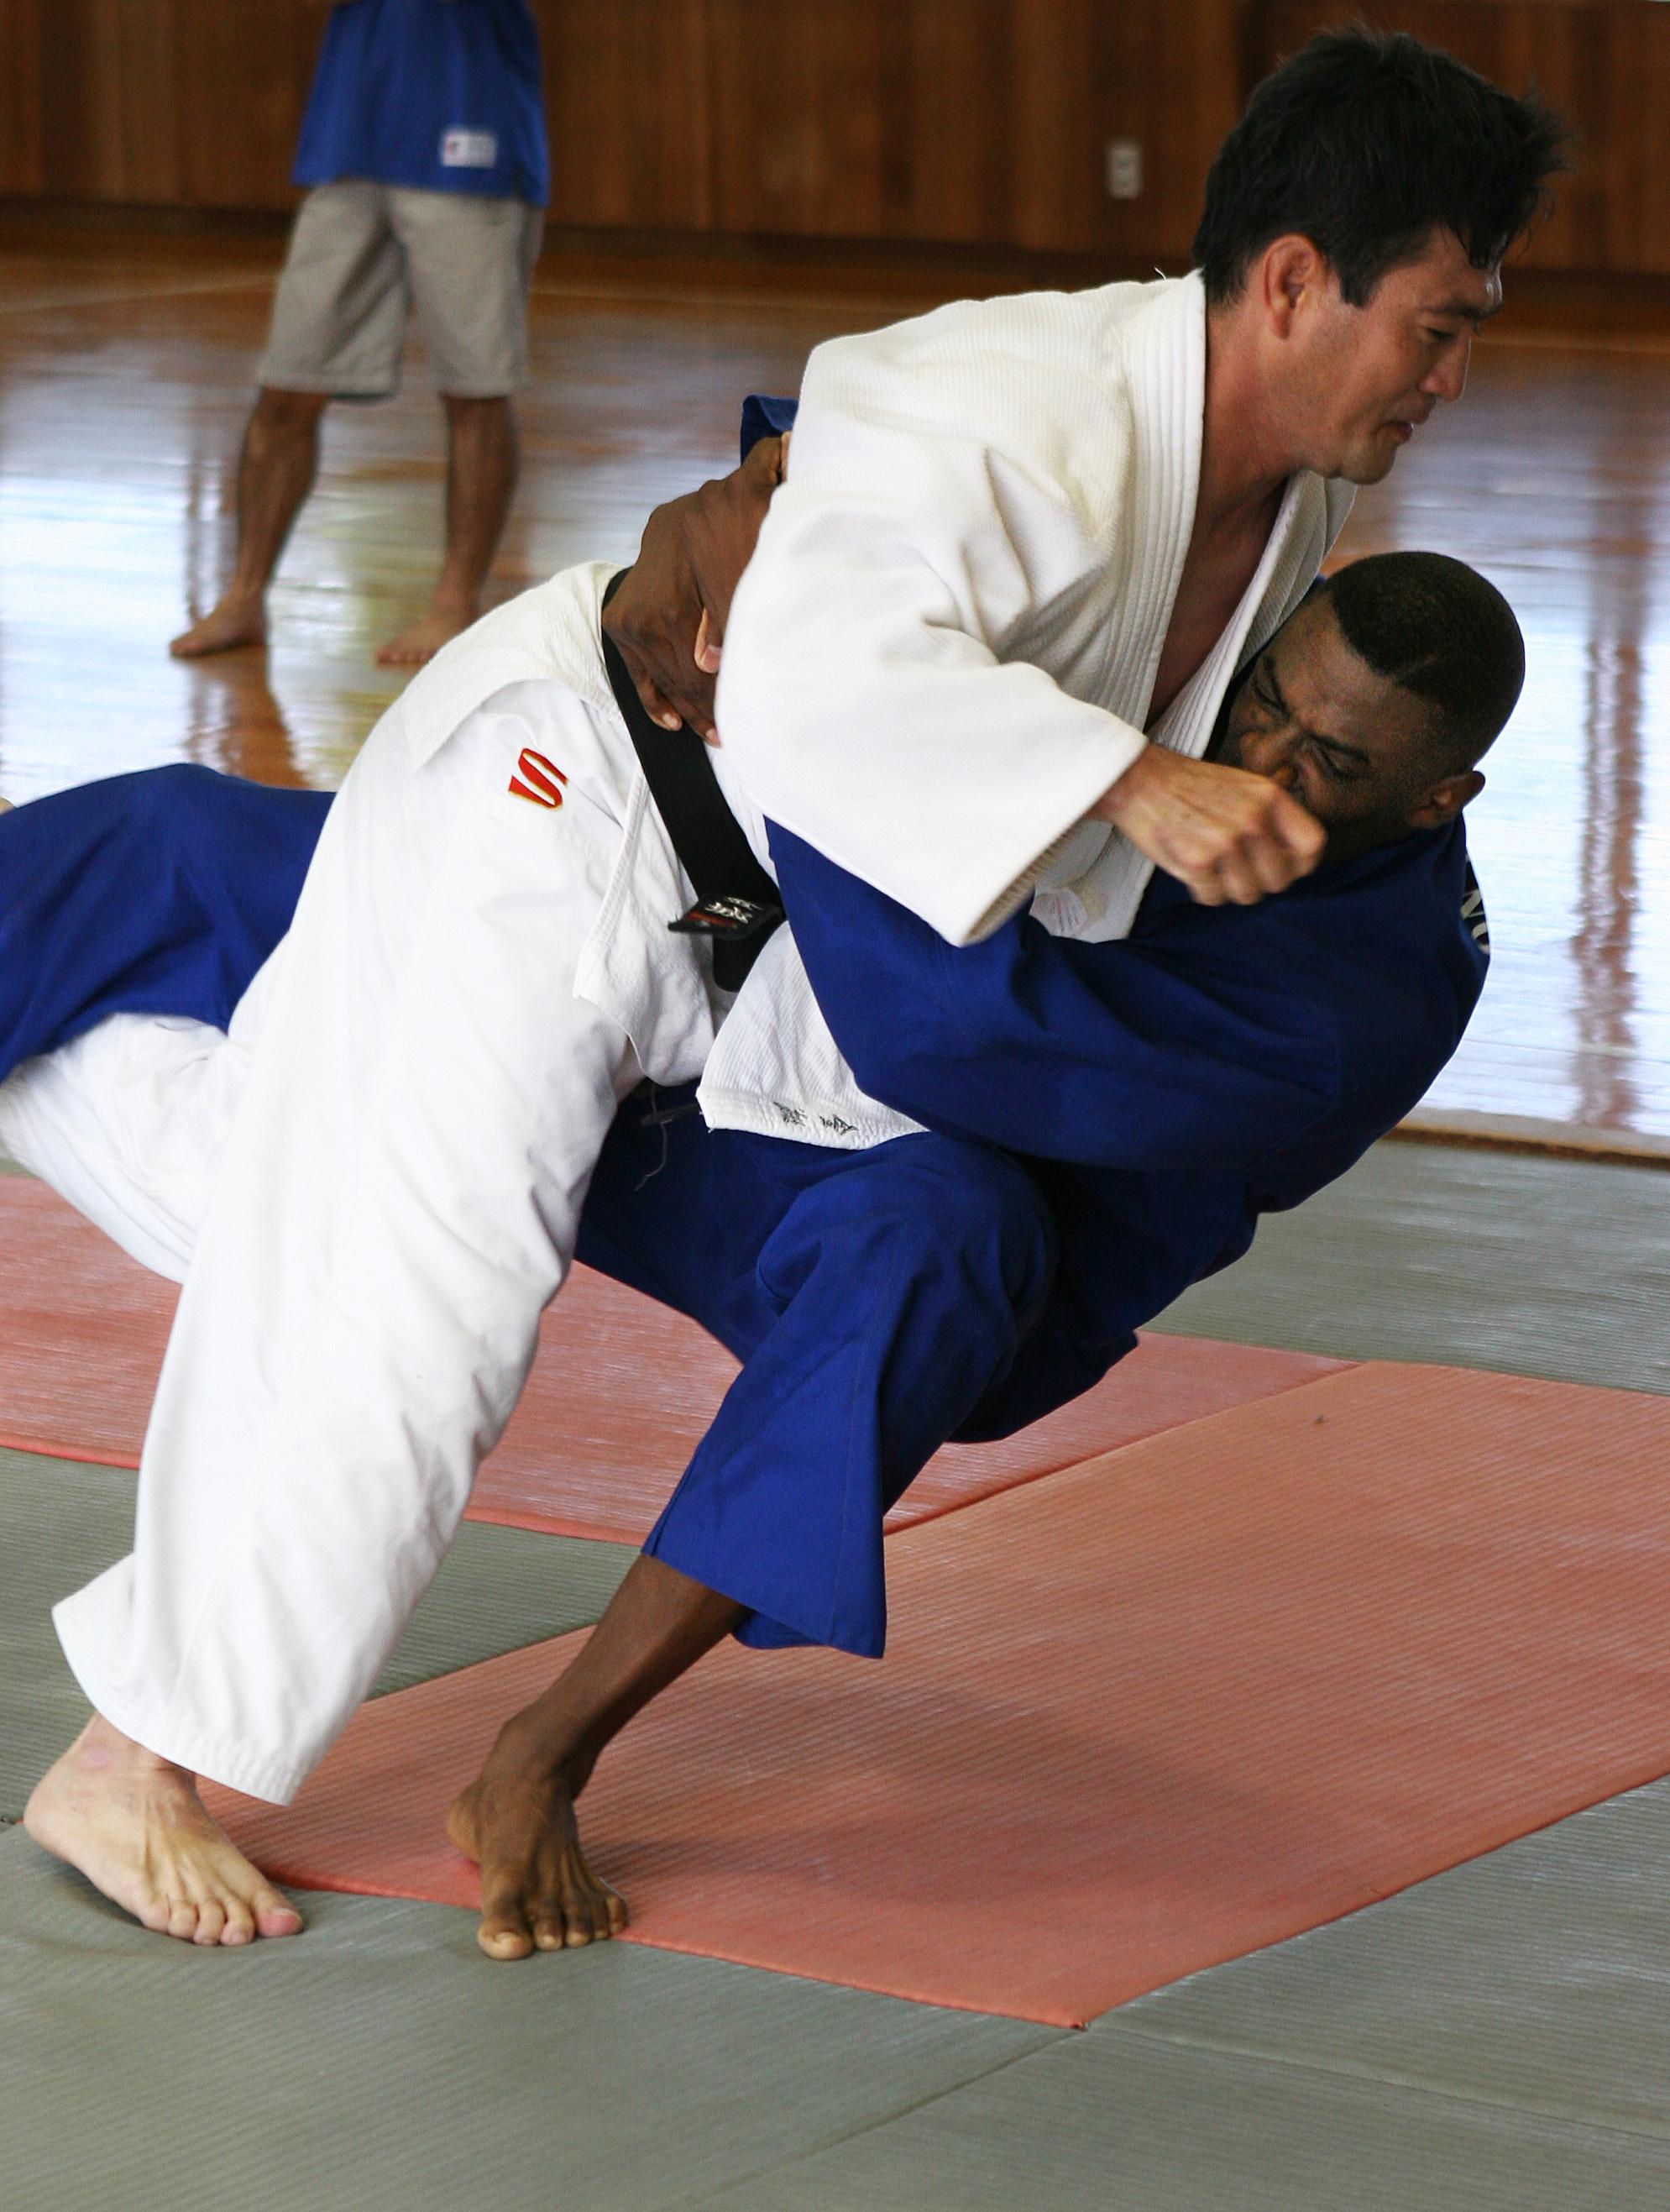 https://upload.wikimedia.org/wikipedia/commons/c/c6/050907-M-7747B-002-Judo.jpg